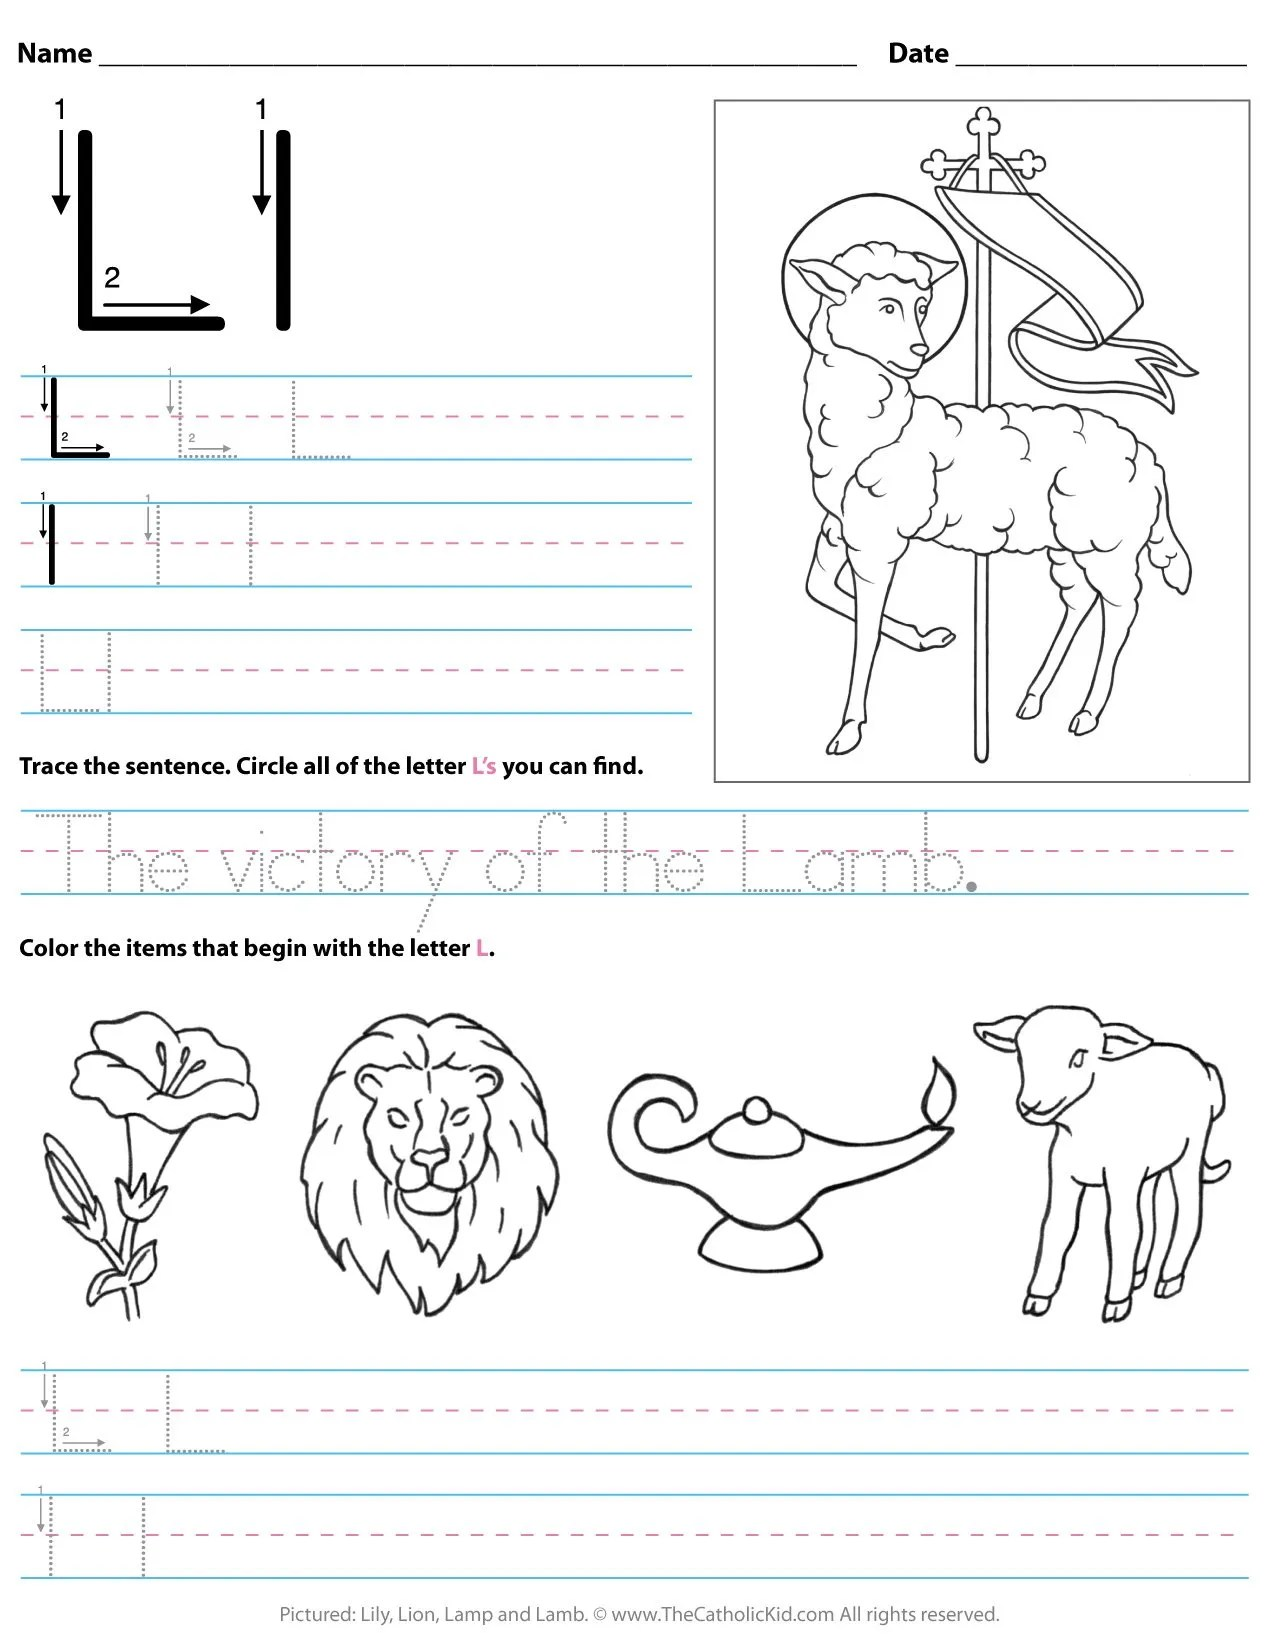 Catholic Preschool Worksheet